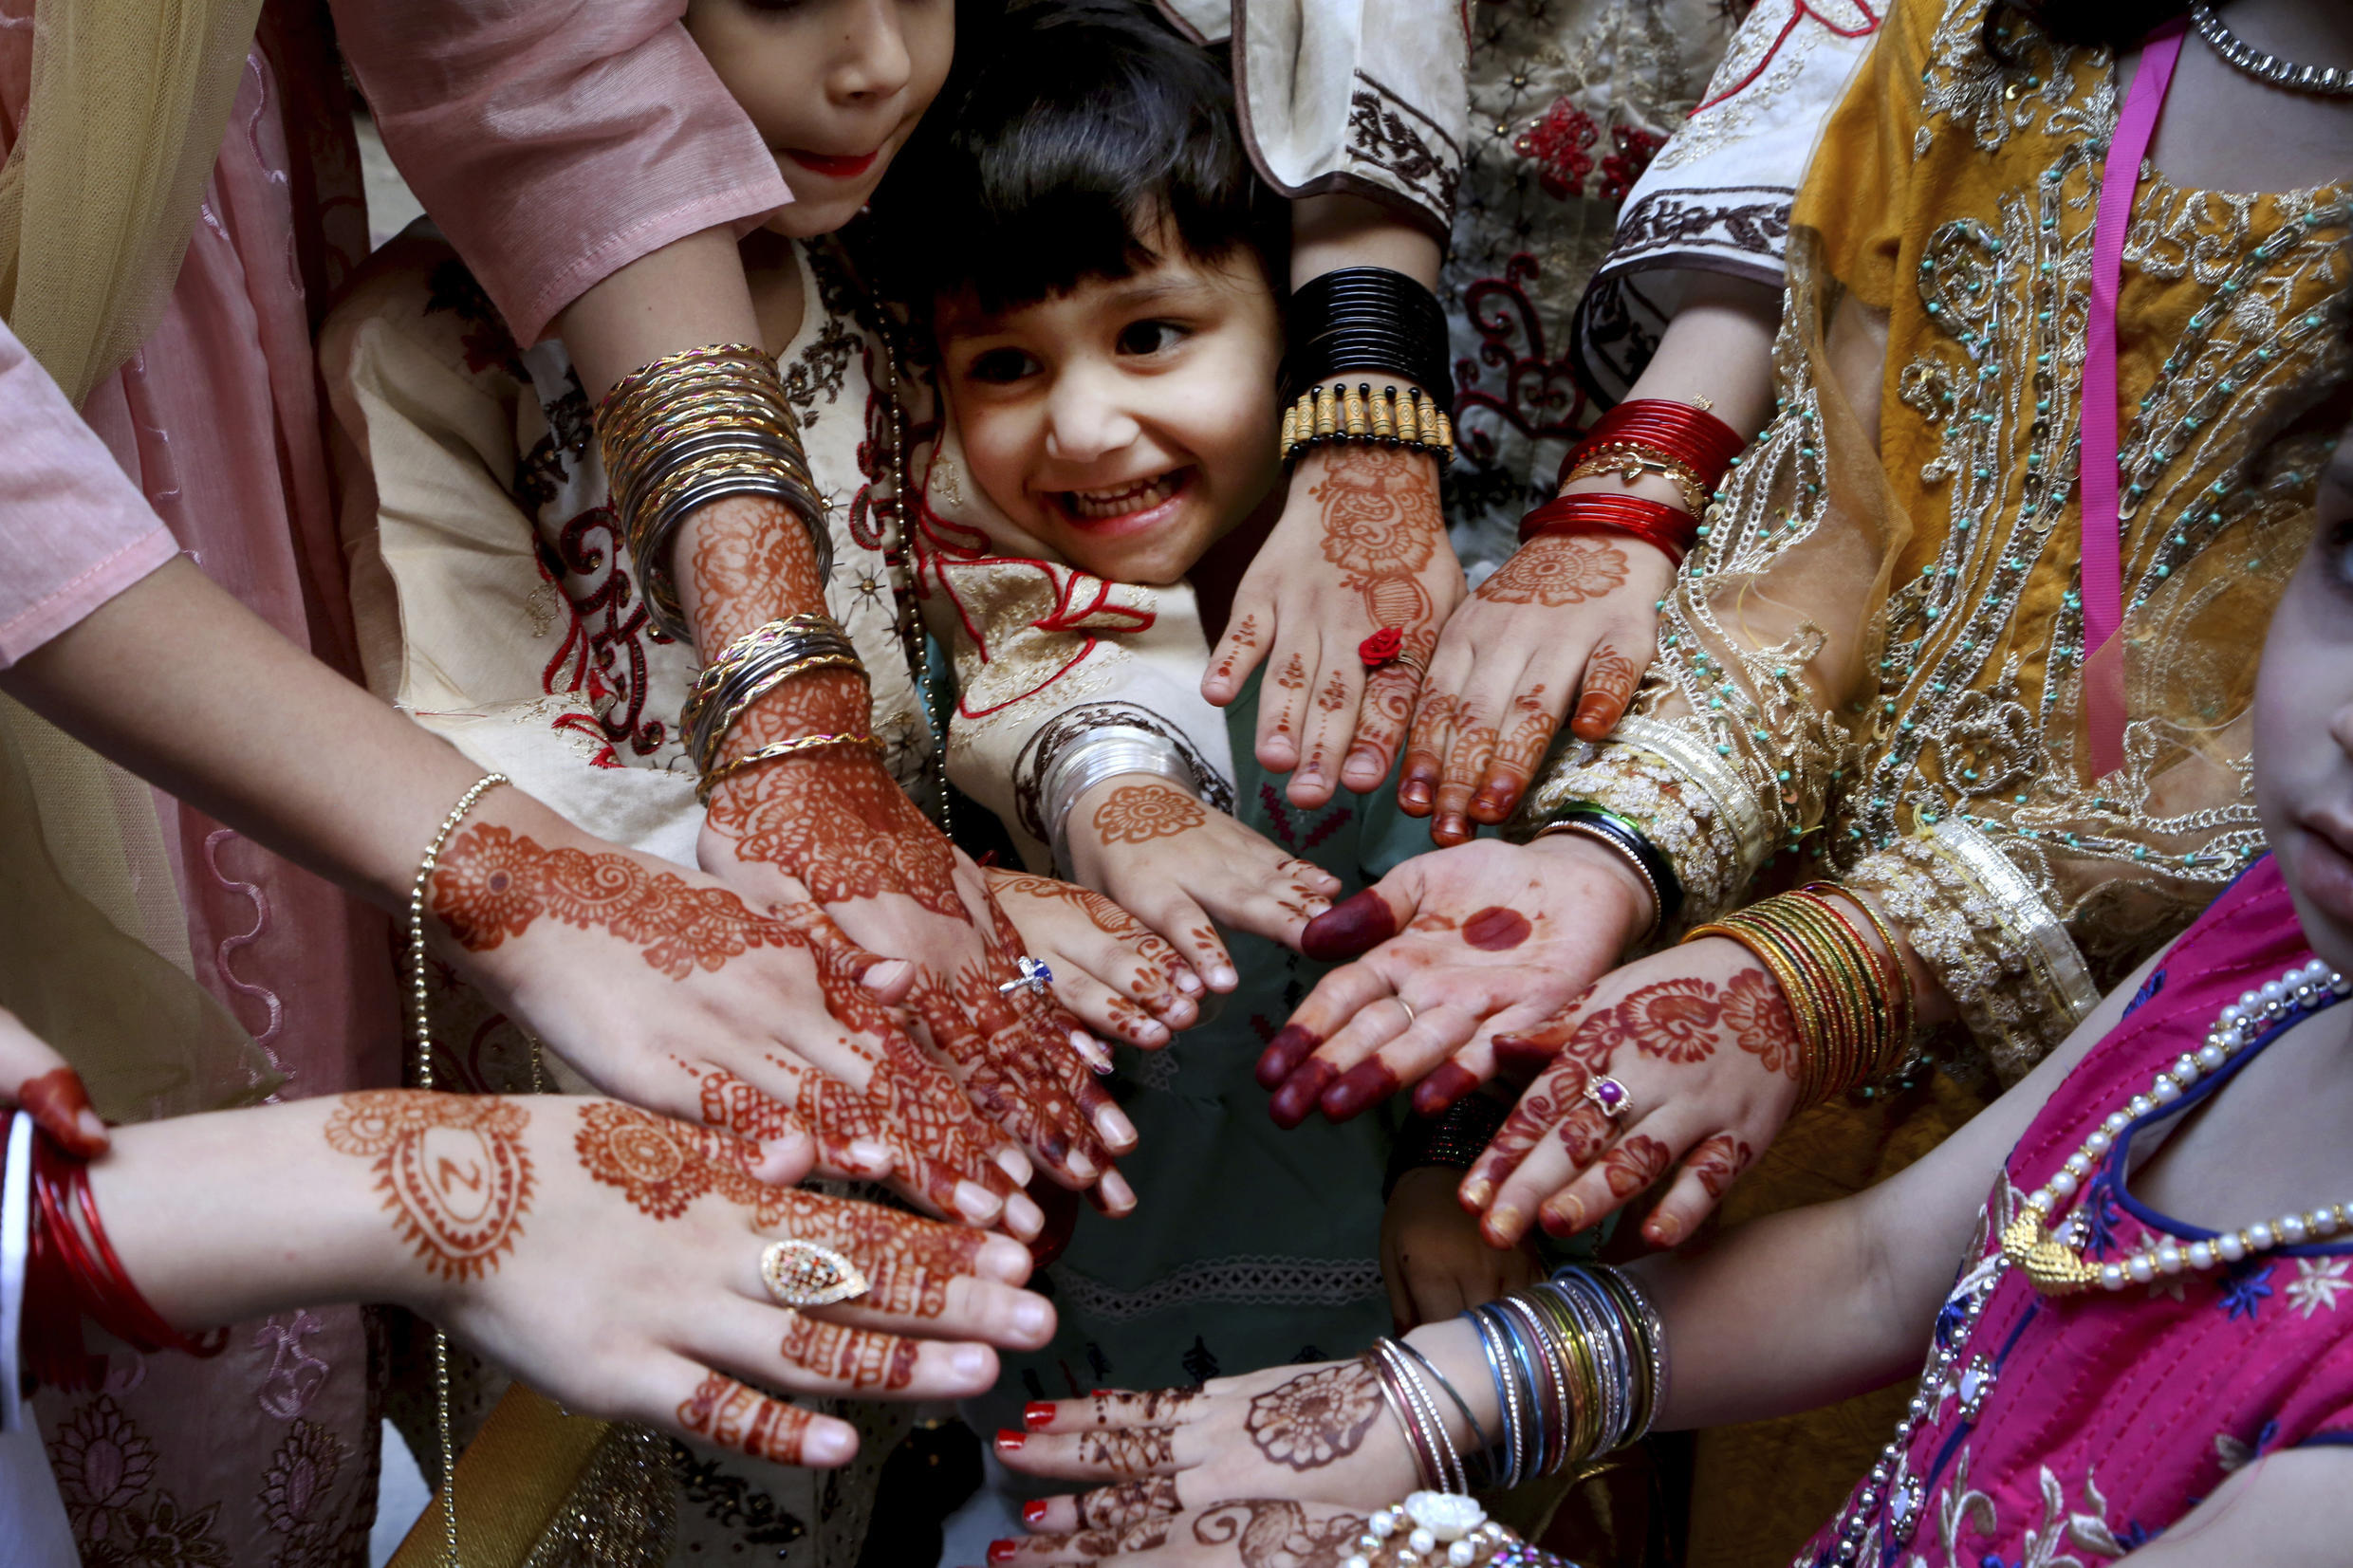 Muslim girls display their hands painted with traditional henna to celebrate Eid al-Fitr holidays, in Peshawar, Pakistan, 13 May, 2021.